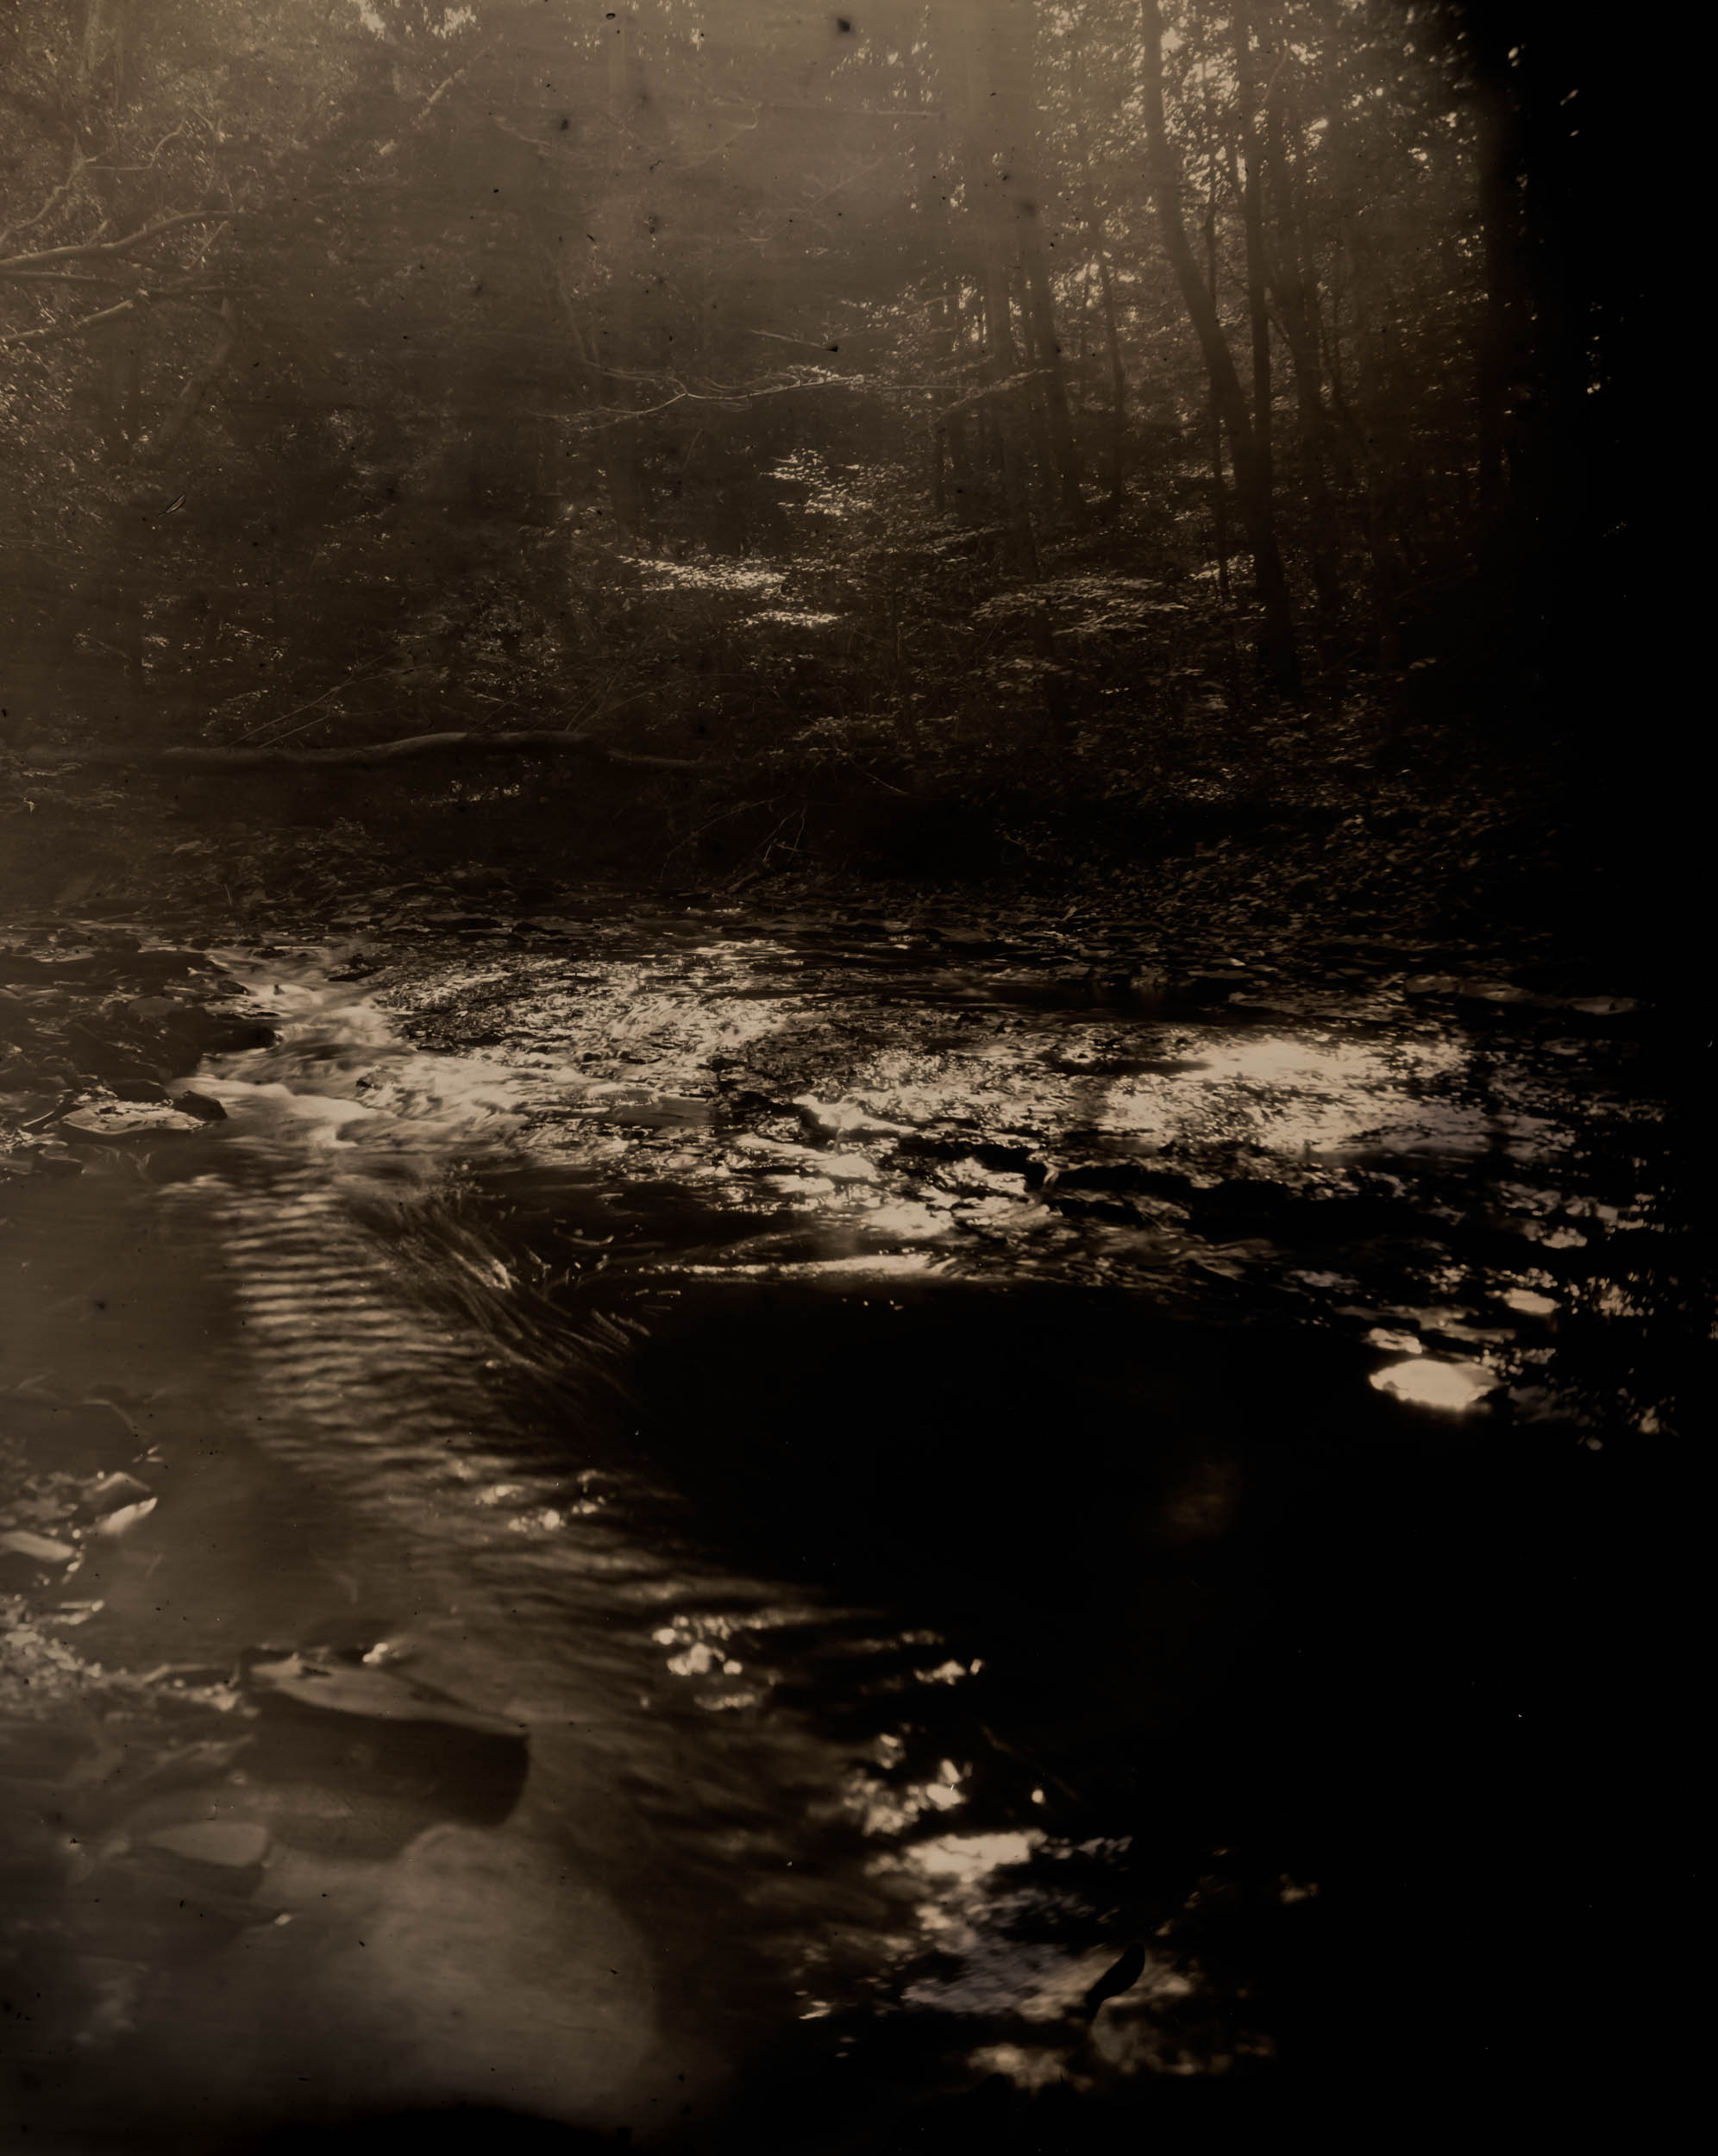 Last Light, ambrotype original, archival pigment print, 40 in. x 50 in., 2018